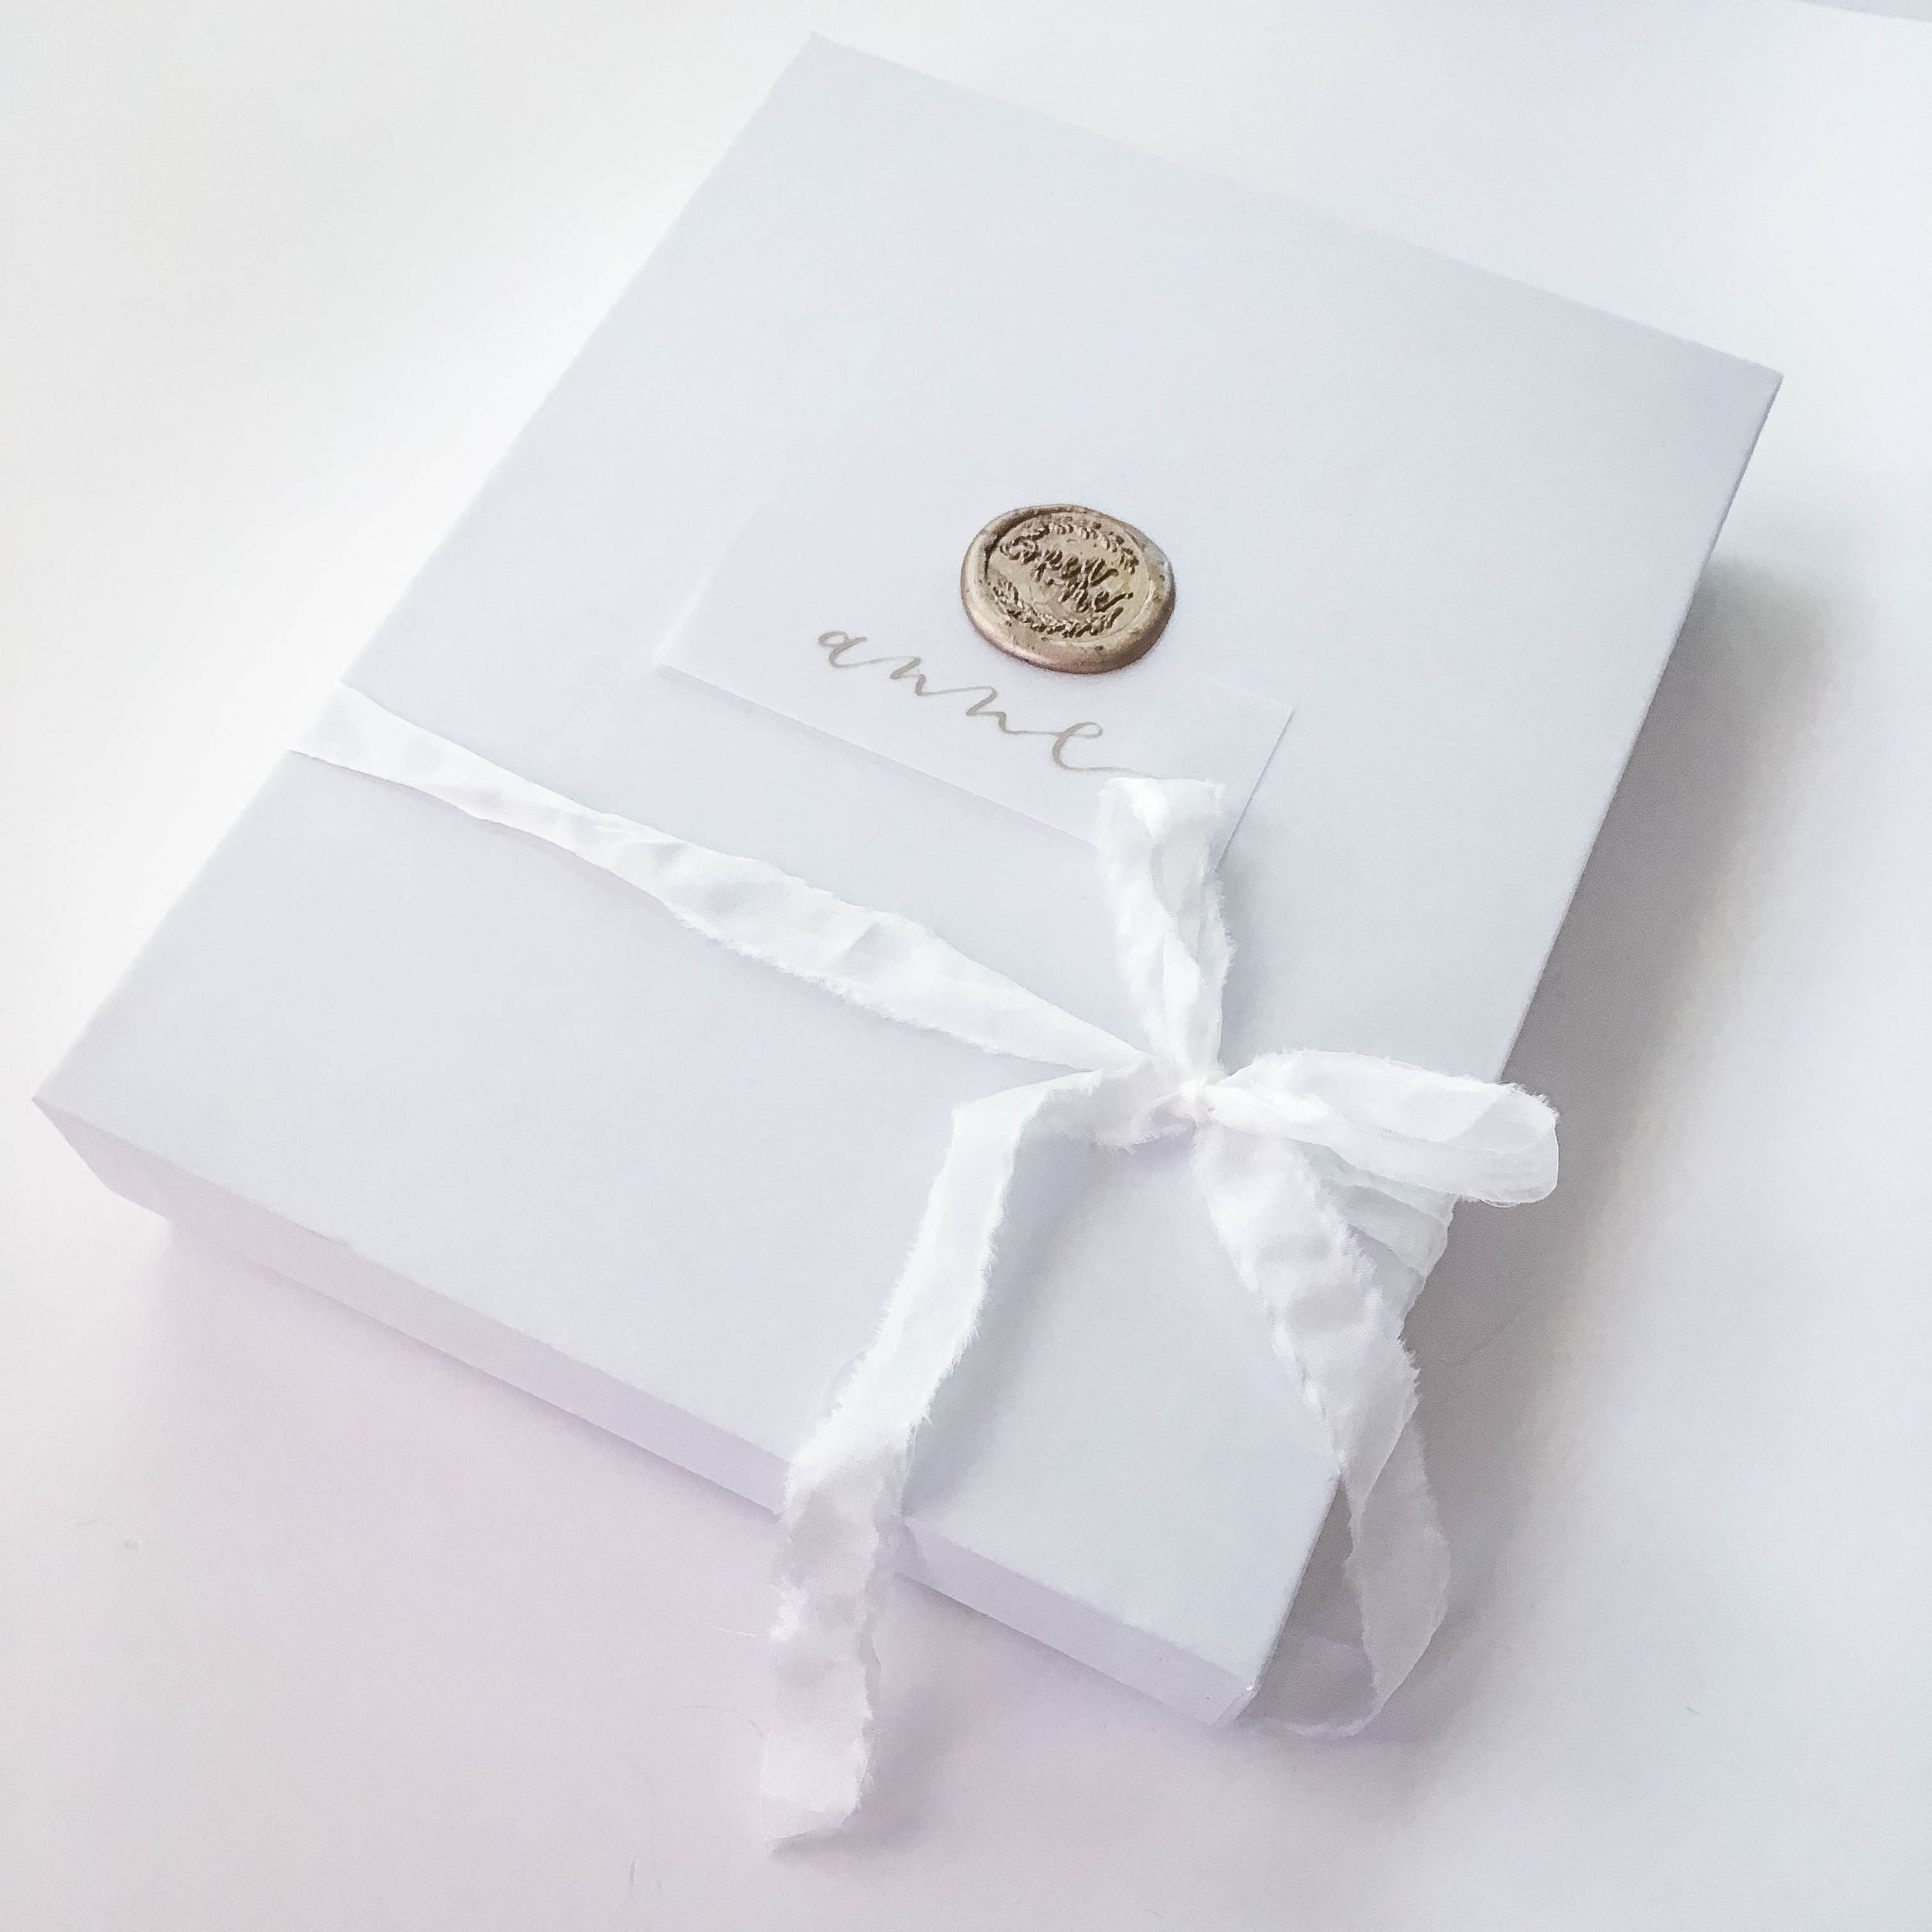 Pictured:  Vellum Place Cards ,  Champagne Gold Wax Beads  and  Open Me Wax Seal Stamp  by Uniqooo